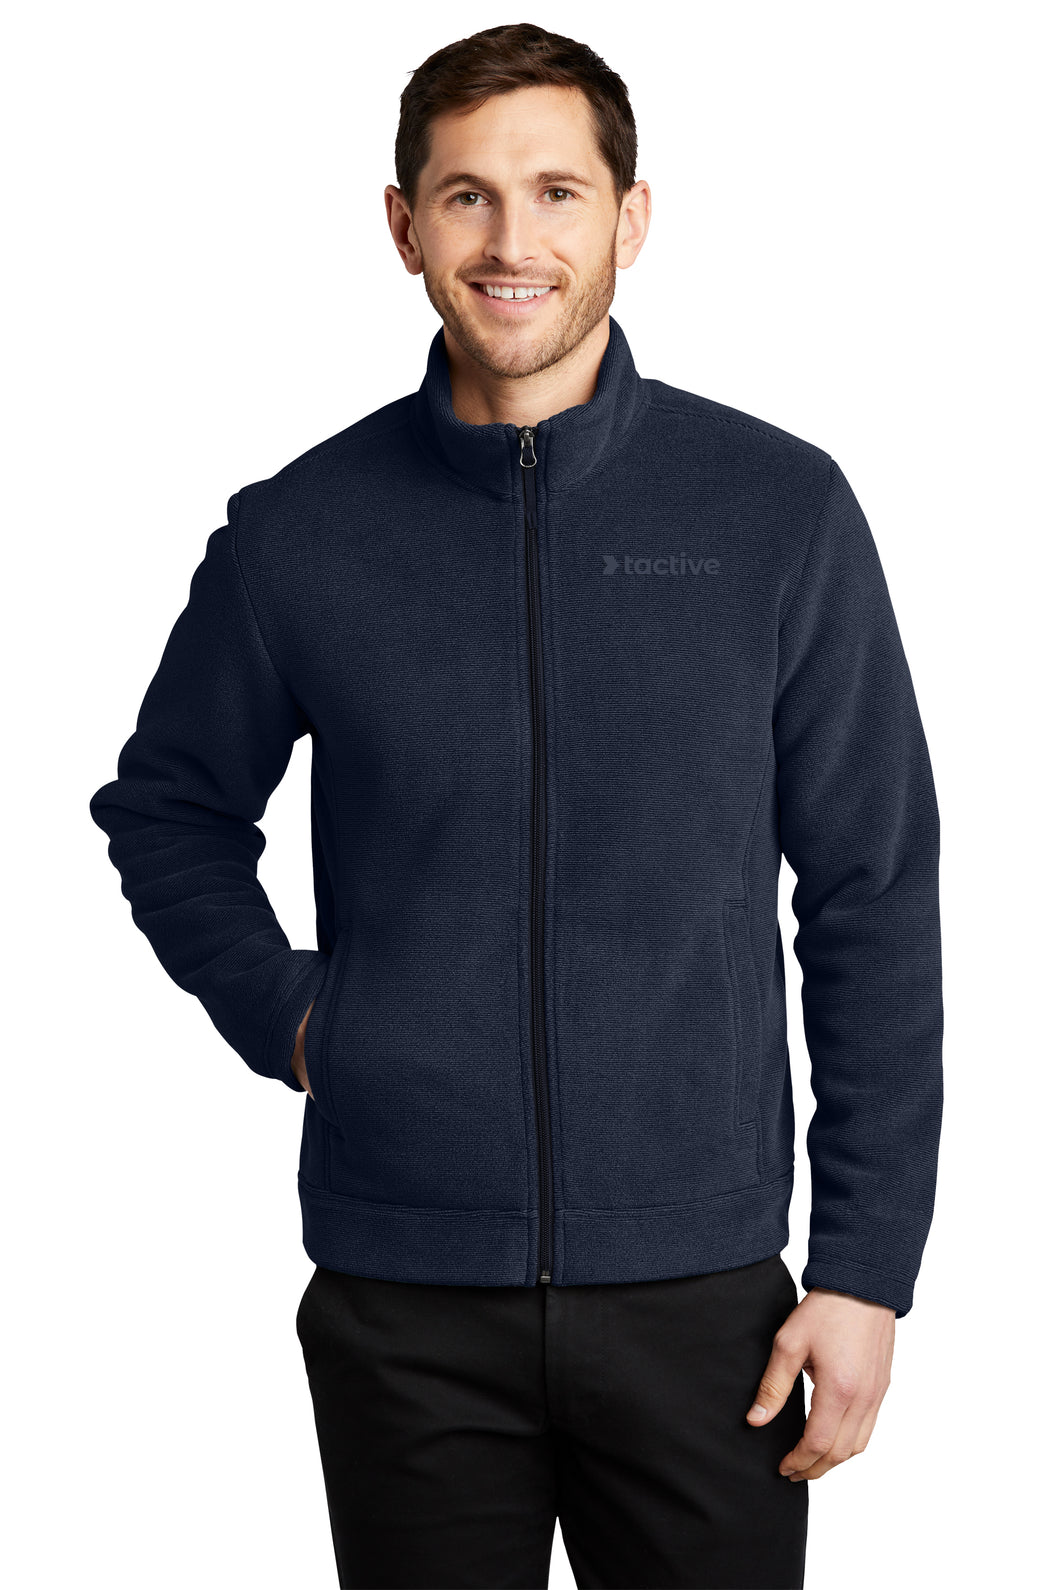 Tactive Ultra Warm Brushed Fleece Jacket